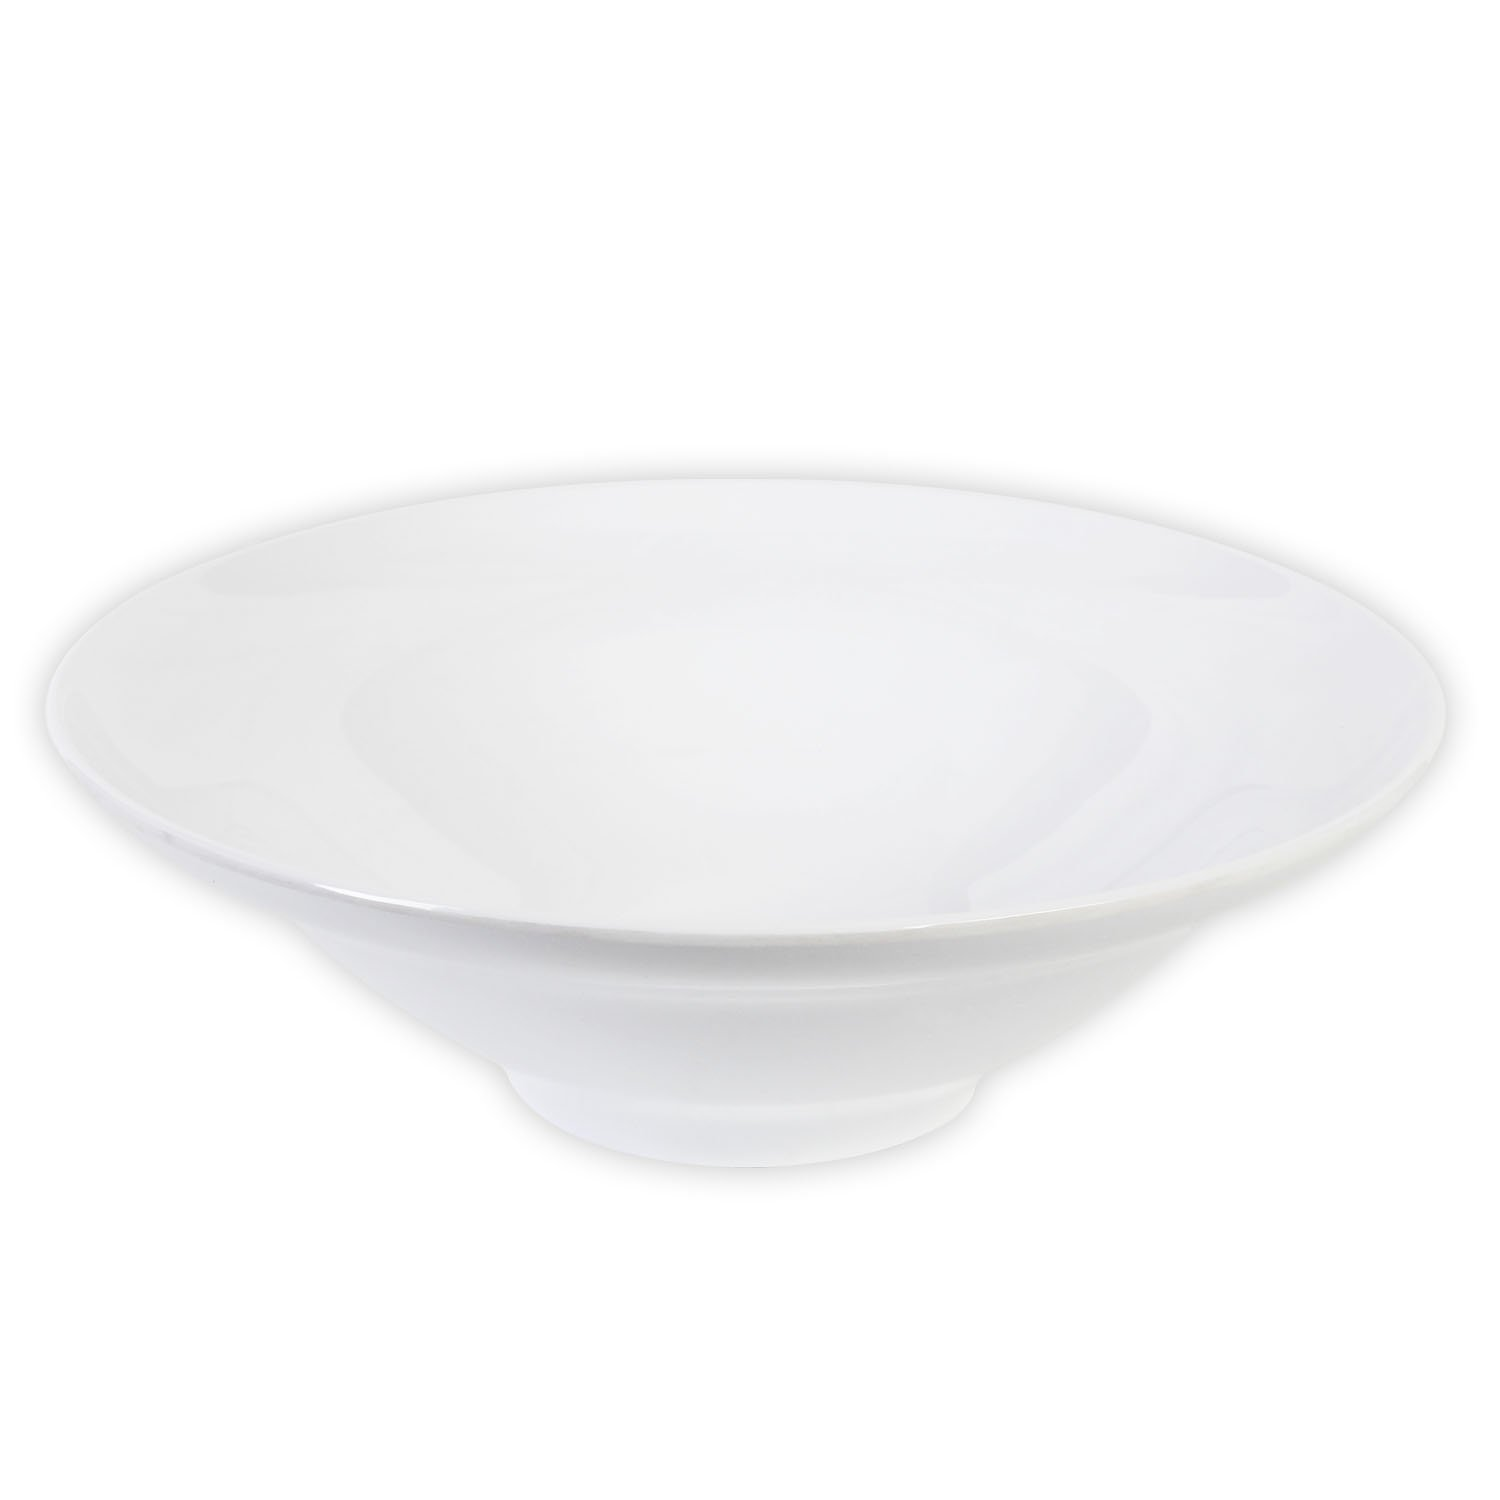 Excellante Royal White Collection 13 by 13-Inch Salad Bowl, 4.125-Inch Deep, 96-Ounce PS6013W